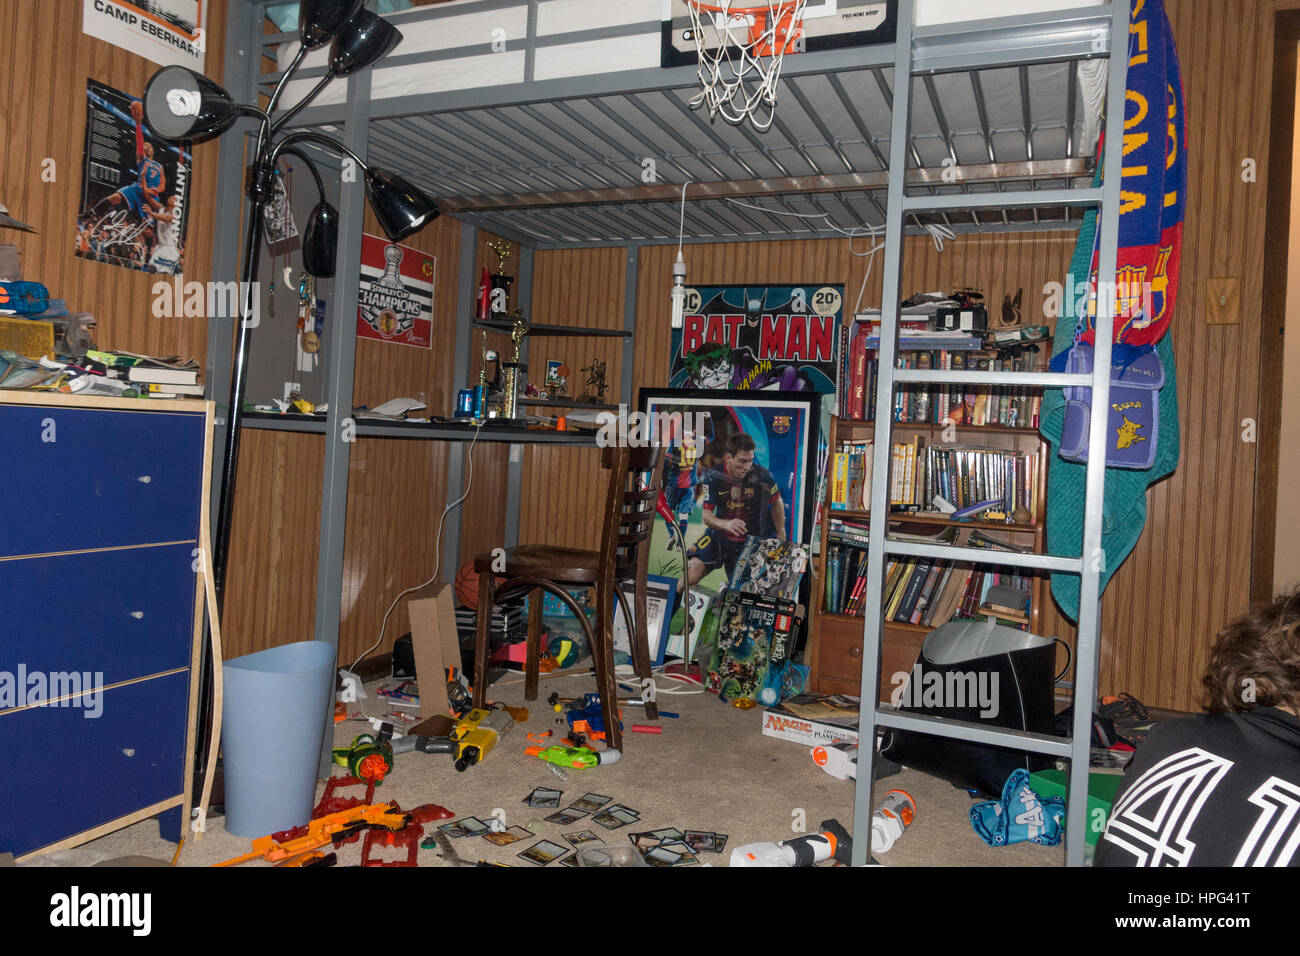 Glimpse into the life of an active 12 year old boy's bedroom filled with  everything he loves. Downers Grove Illinois IL USA